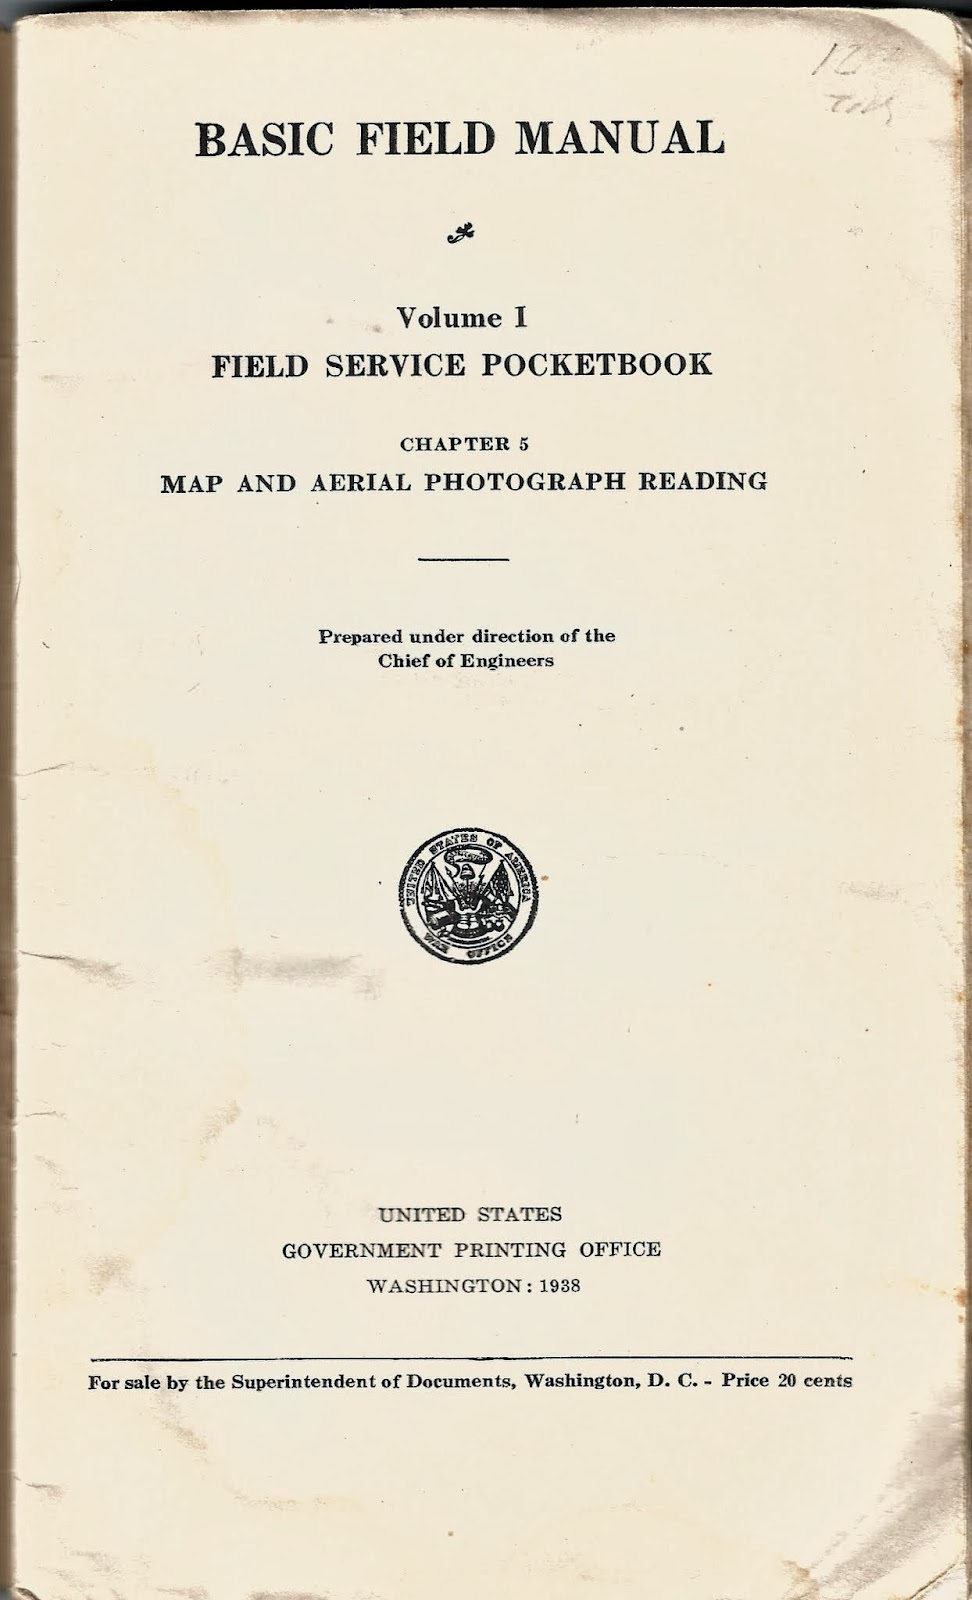 Northing easting the origins of army map reading 1938 as an initial take on the topic this manual is actually pretty good its biggest problem is that its an engineer manual and the last thing engineers like pooptronica Image collections